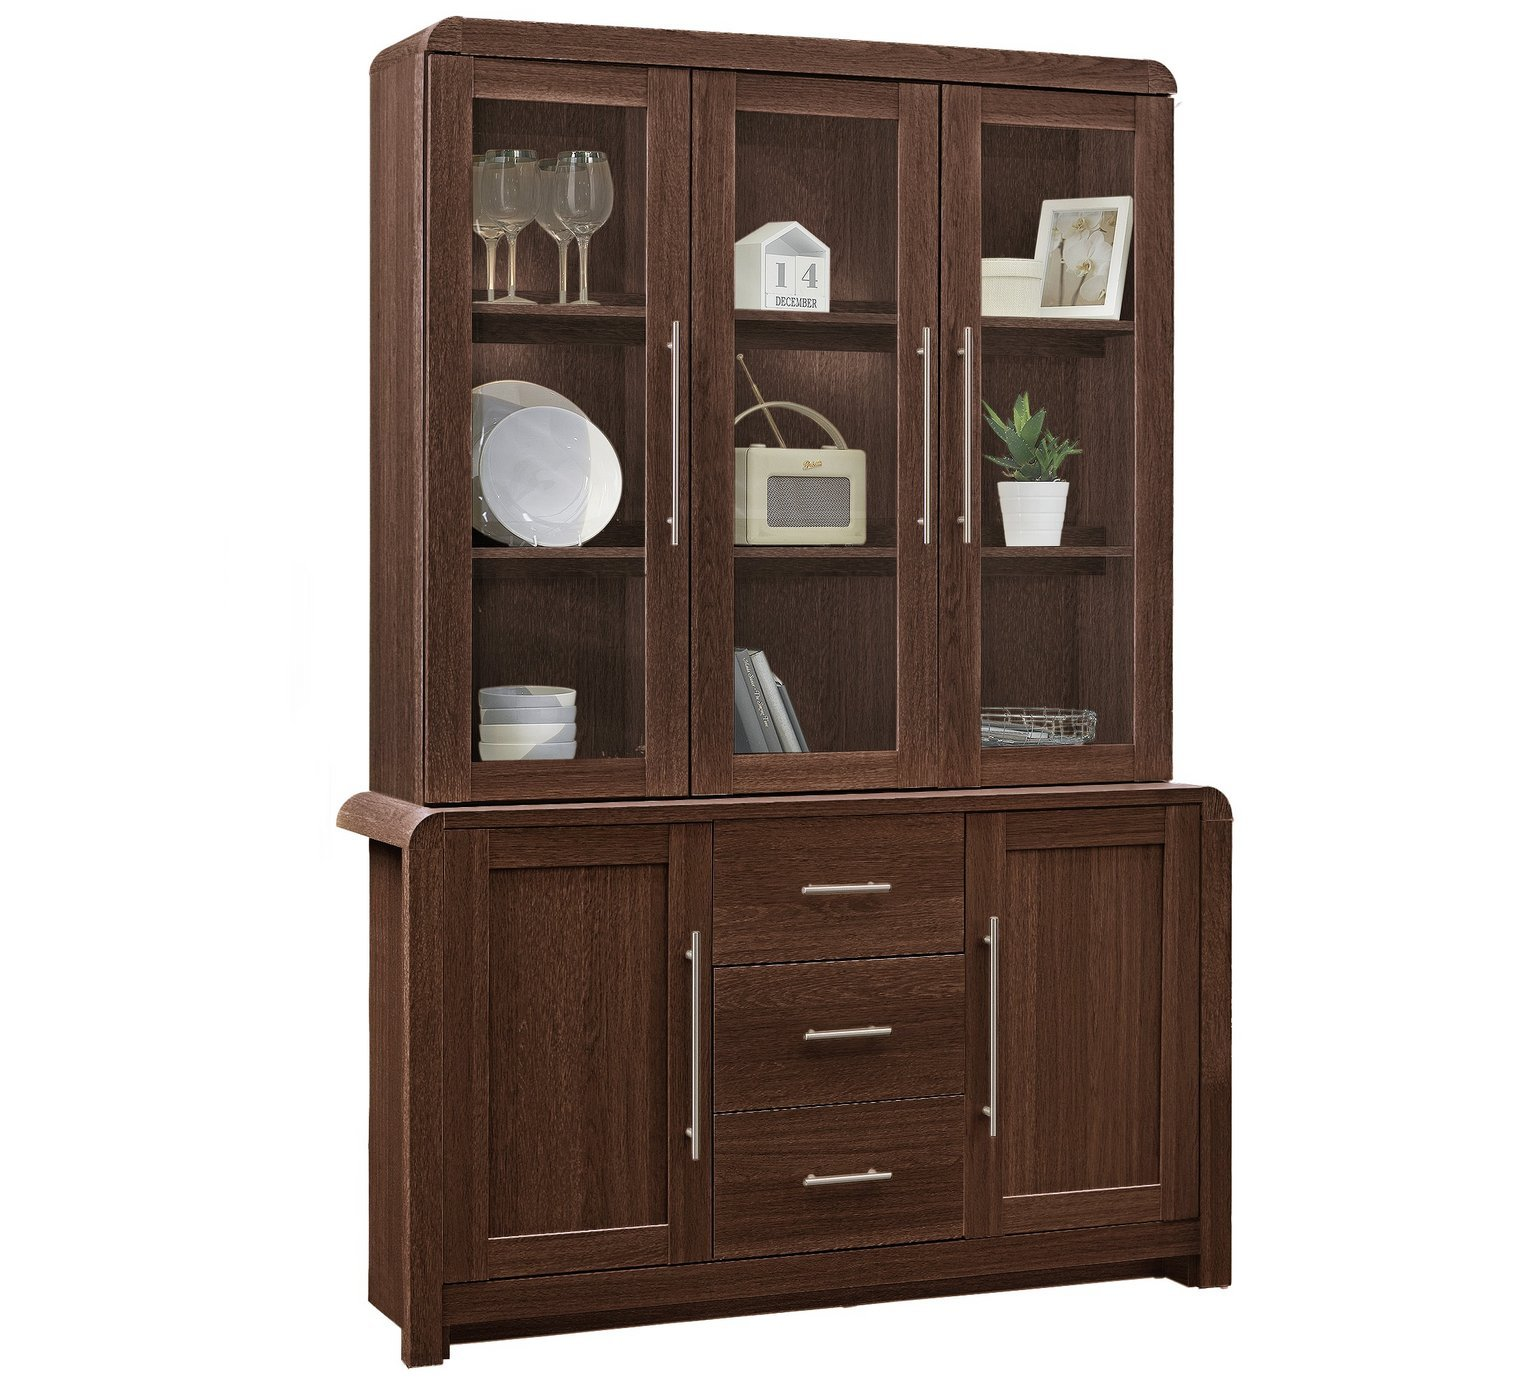 display cabinets and glass cabinets page 1 argos price. Black Bedroom Furniture Sets. Home Design Ideas